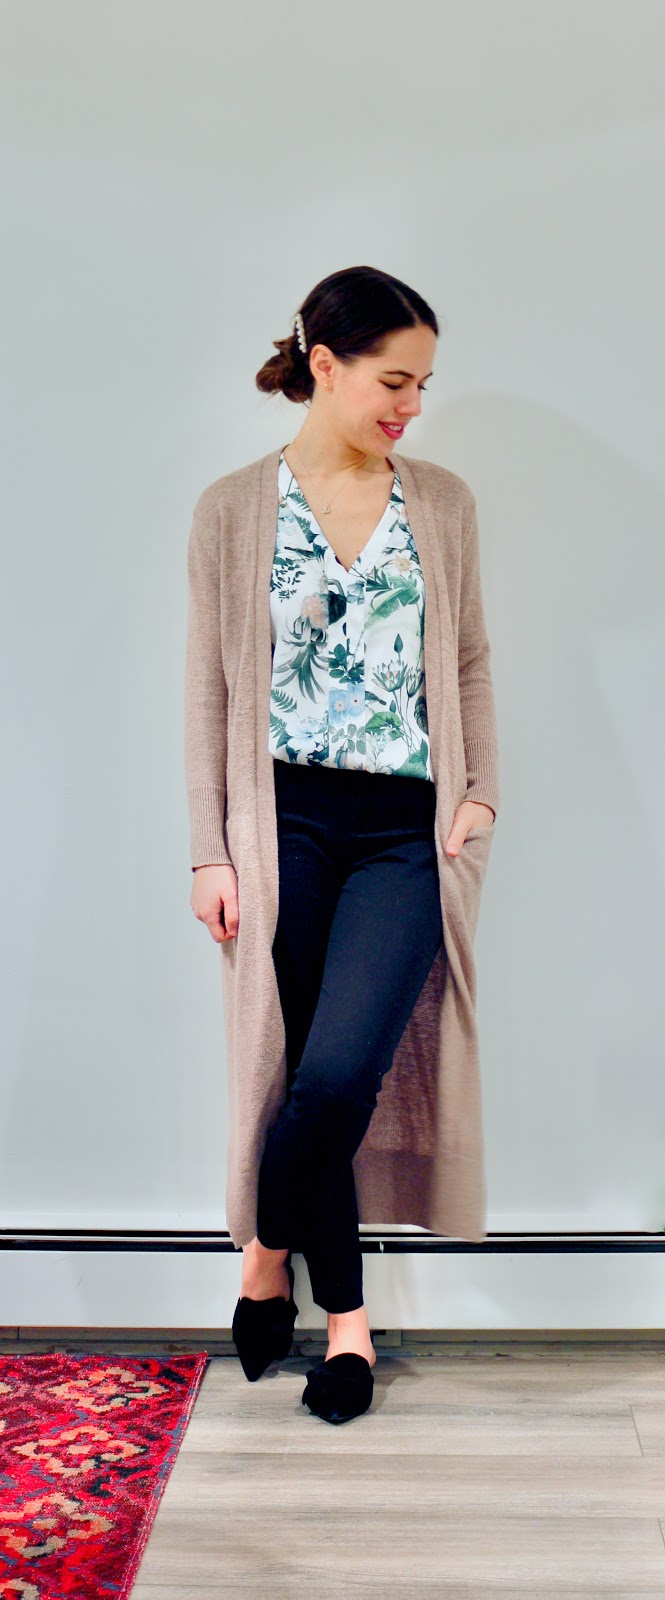 Jules in Flats - Duster Cardigan with Botanical Print Blouse (Business Casual Winter Workwear on a Budget)